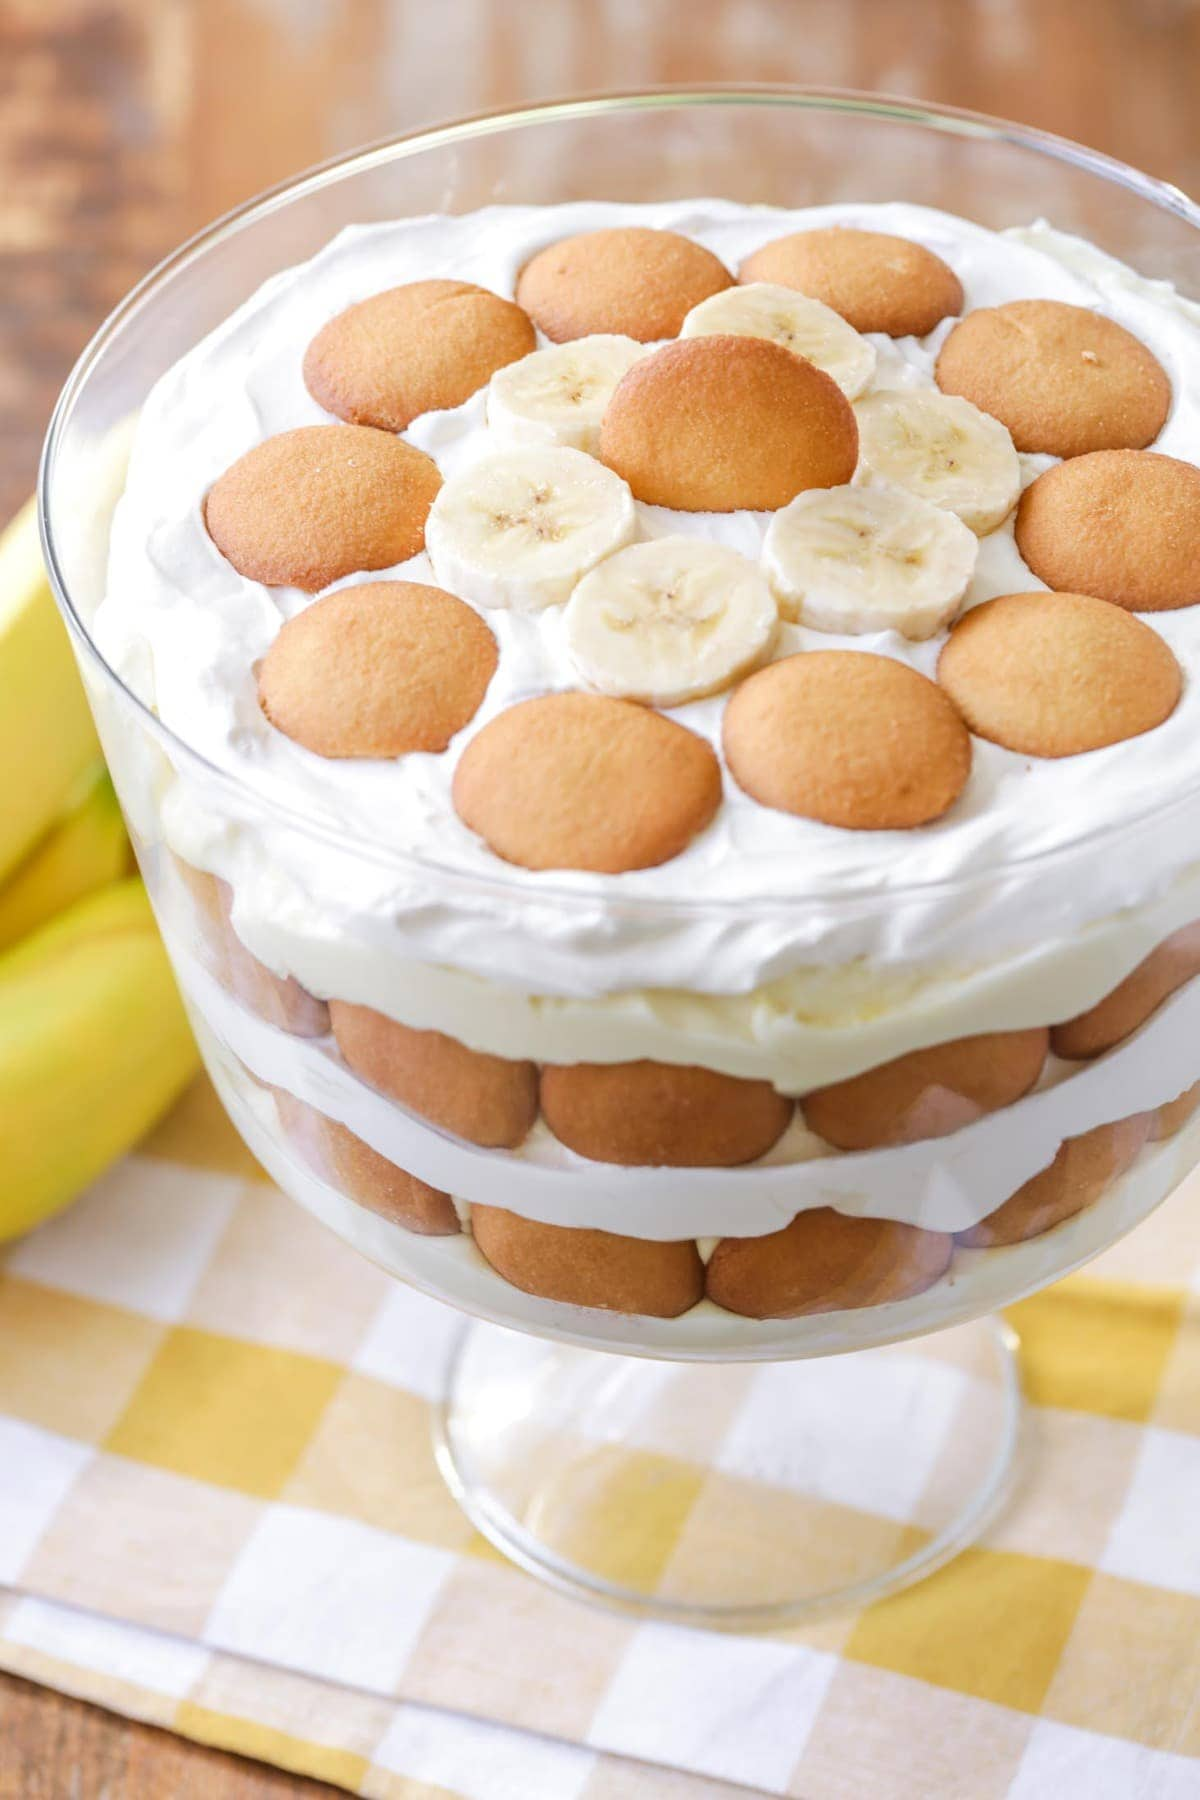 Easy Banana Pudding topped with nilla wafers and banana slices